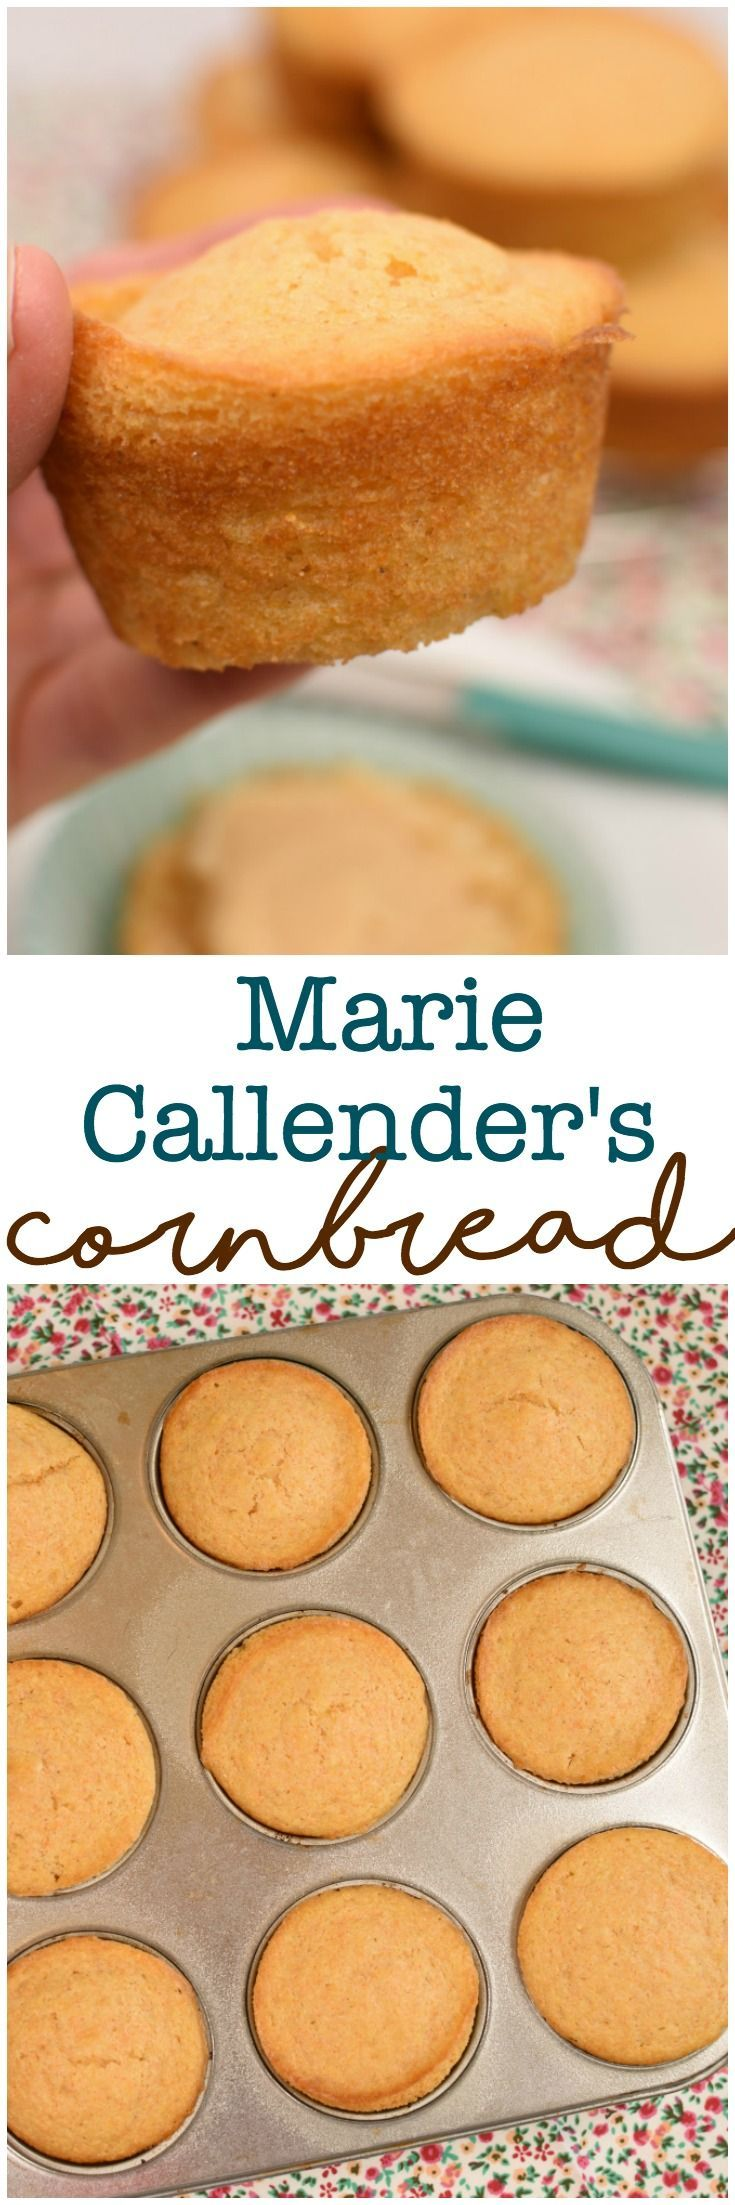 Copycat Marie Callendar's Cornbread is easy to make, you can make it in a cake pan or into muffins, is sweet and moist! Plus learn how to make your own cornmeal!